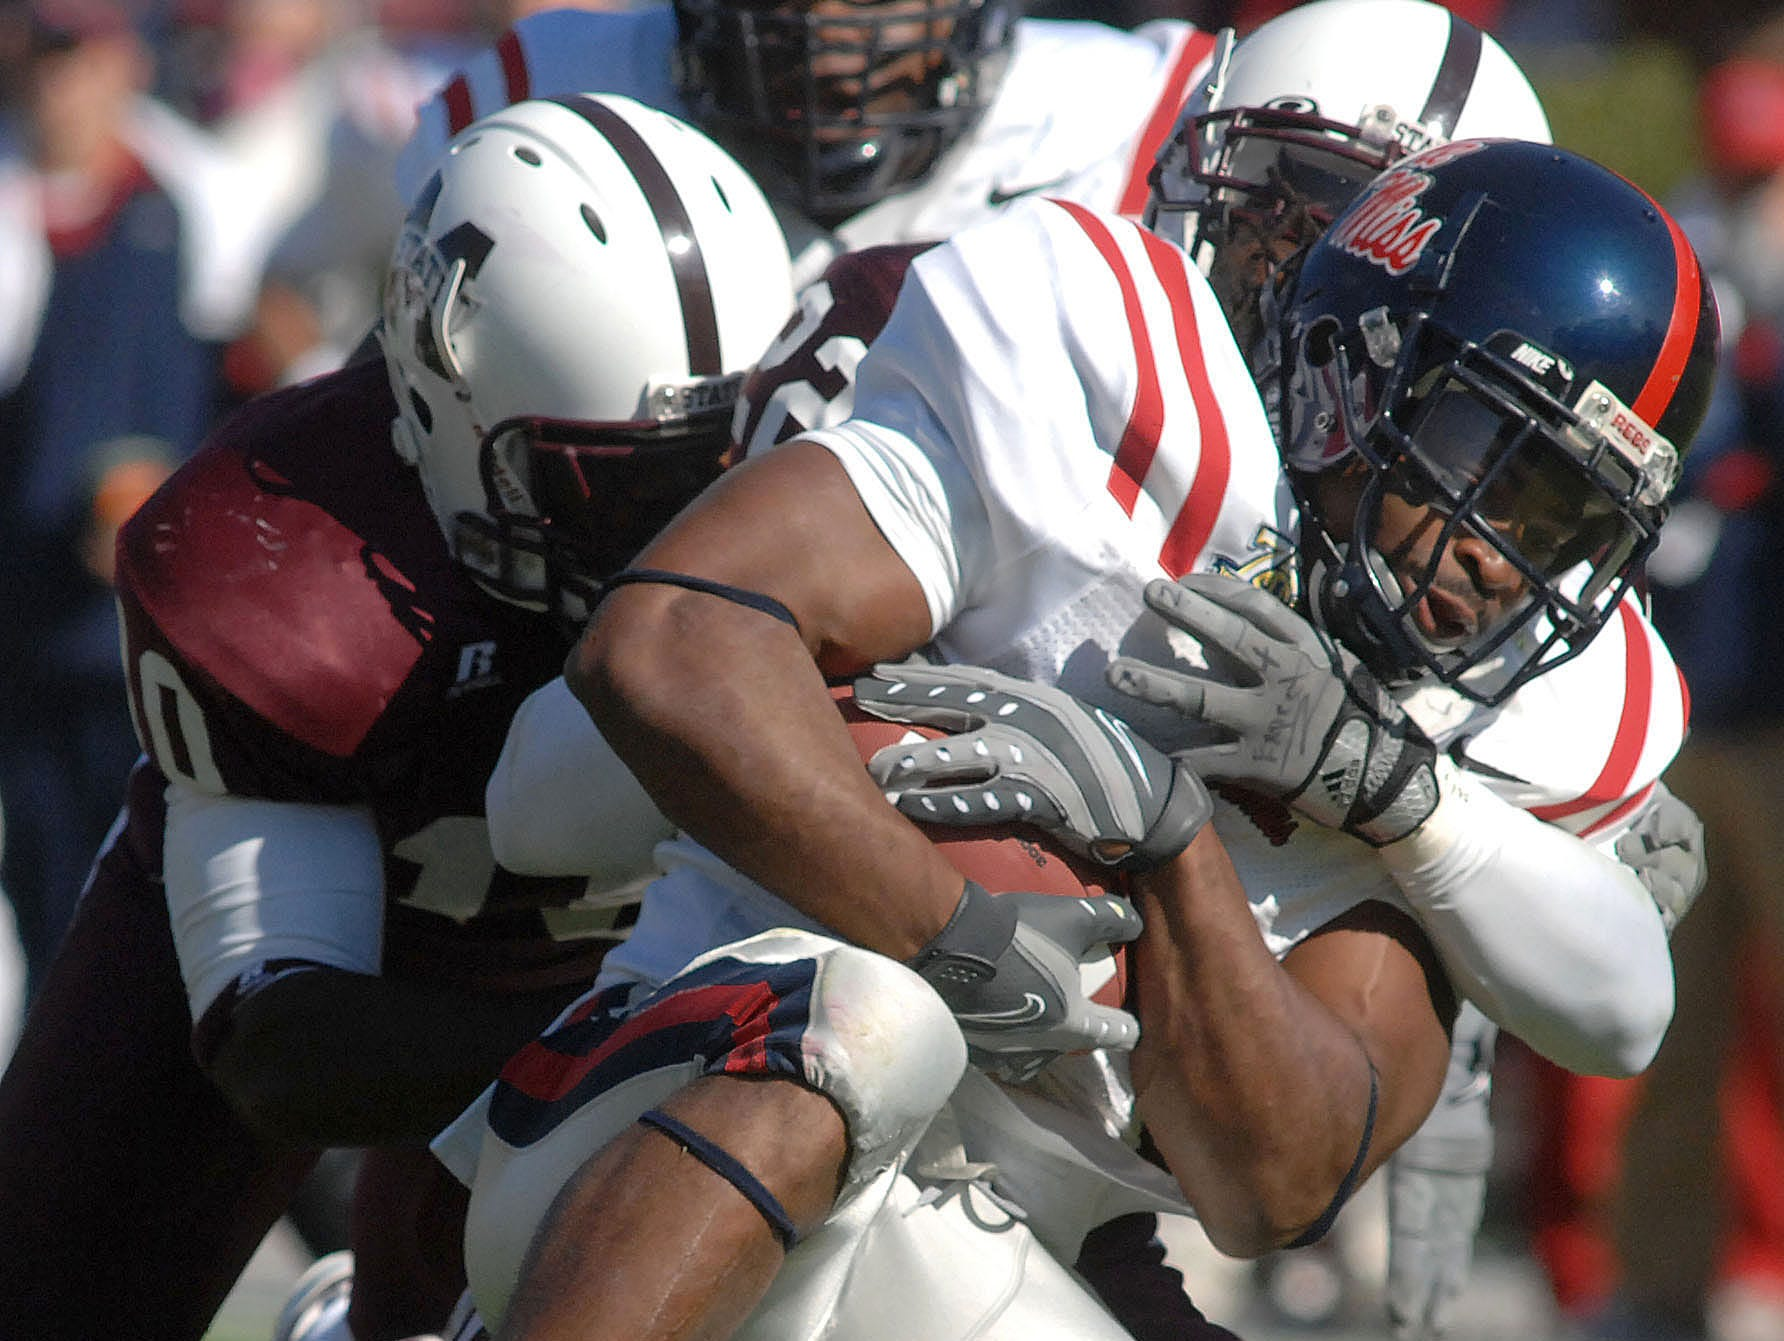 Ole Miss running back BenJarvus Green-Ellis was tackled on fourth-and-one from his own 49 yard line in the 2007 Egg Bowl, setting off a Mississippi State comeback.